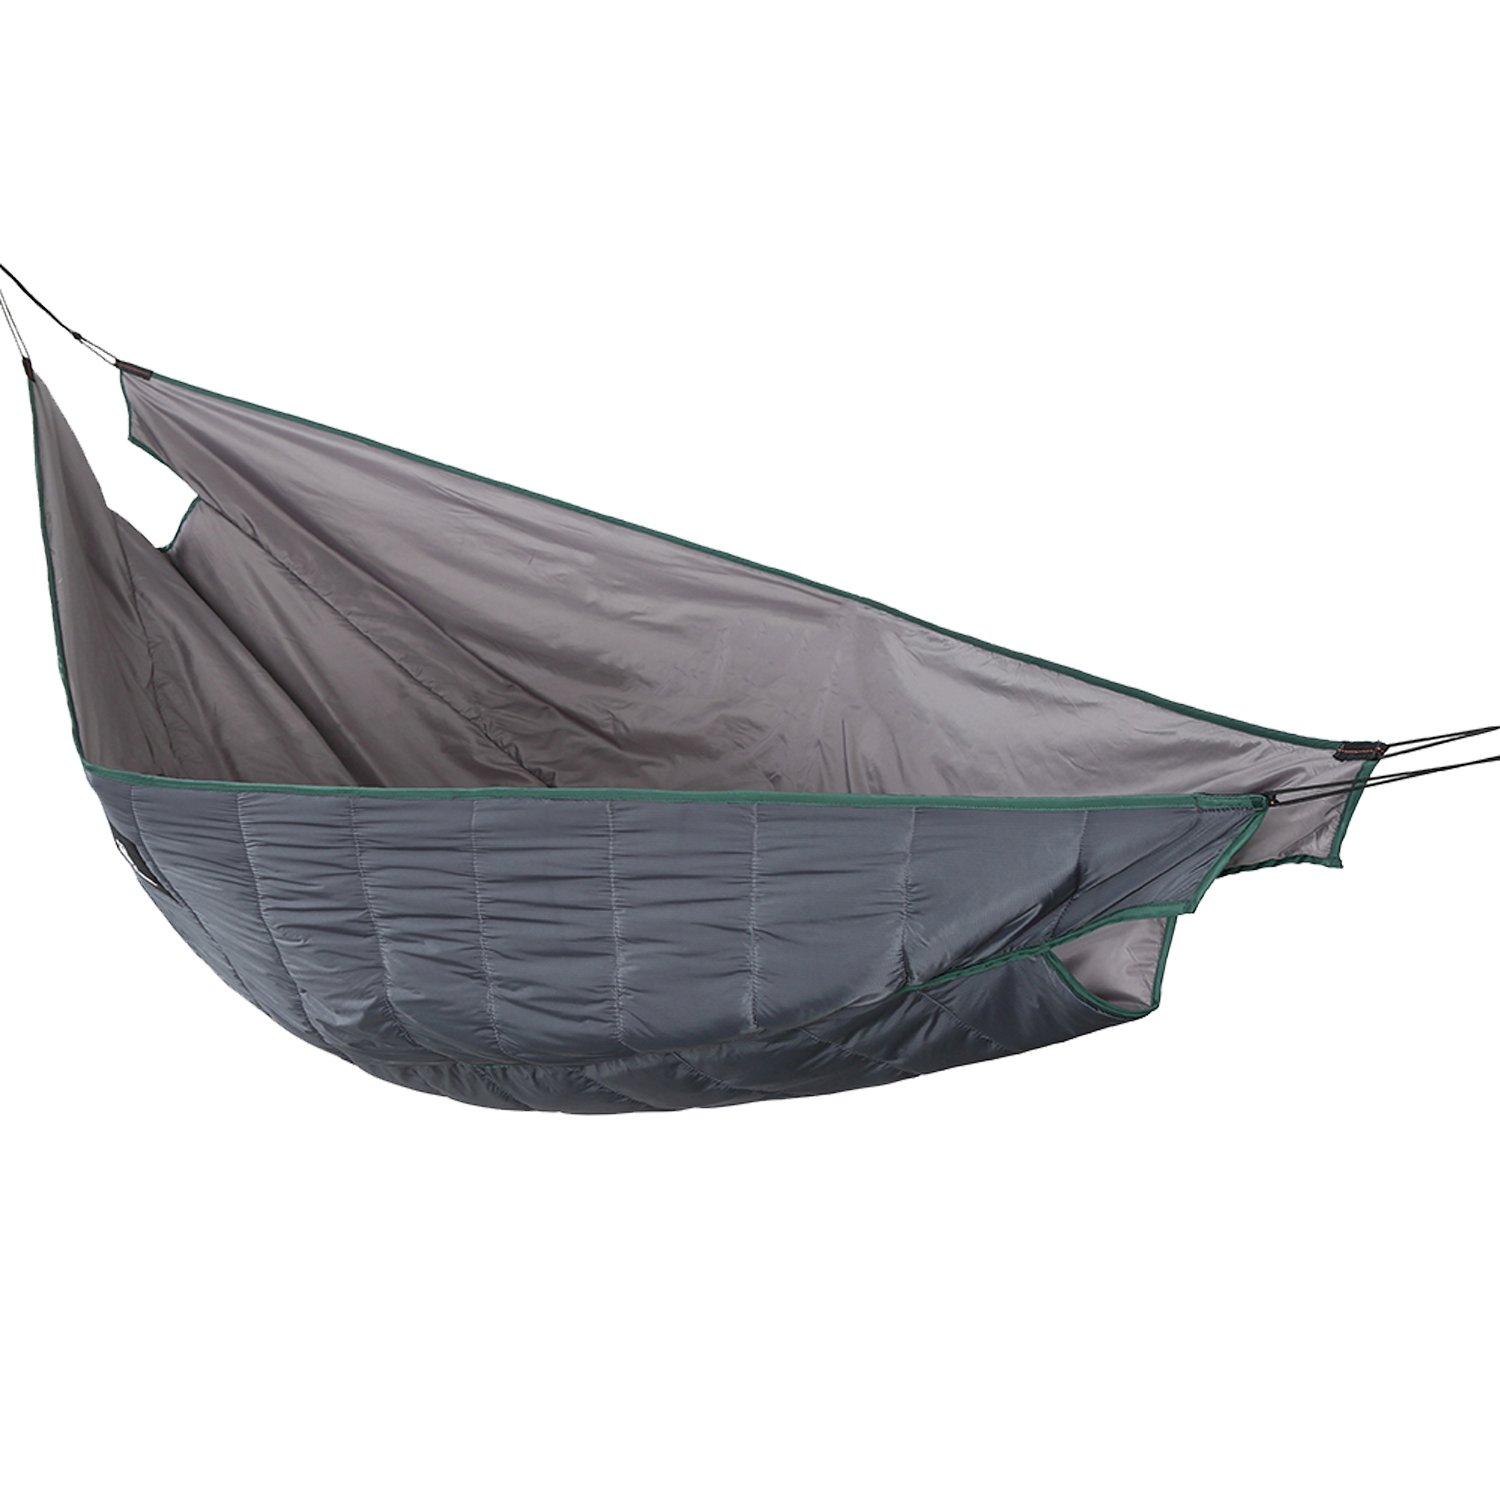 OneTigrisハンモックUnderquilt、軽量Packableフル長under blanket for Campingバック裏庭 B07D3RM7HG Shadow Grey - Double Version Shadow Grey - Double Version